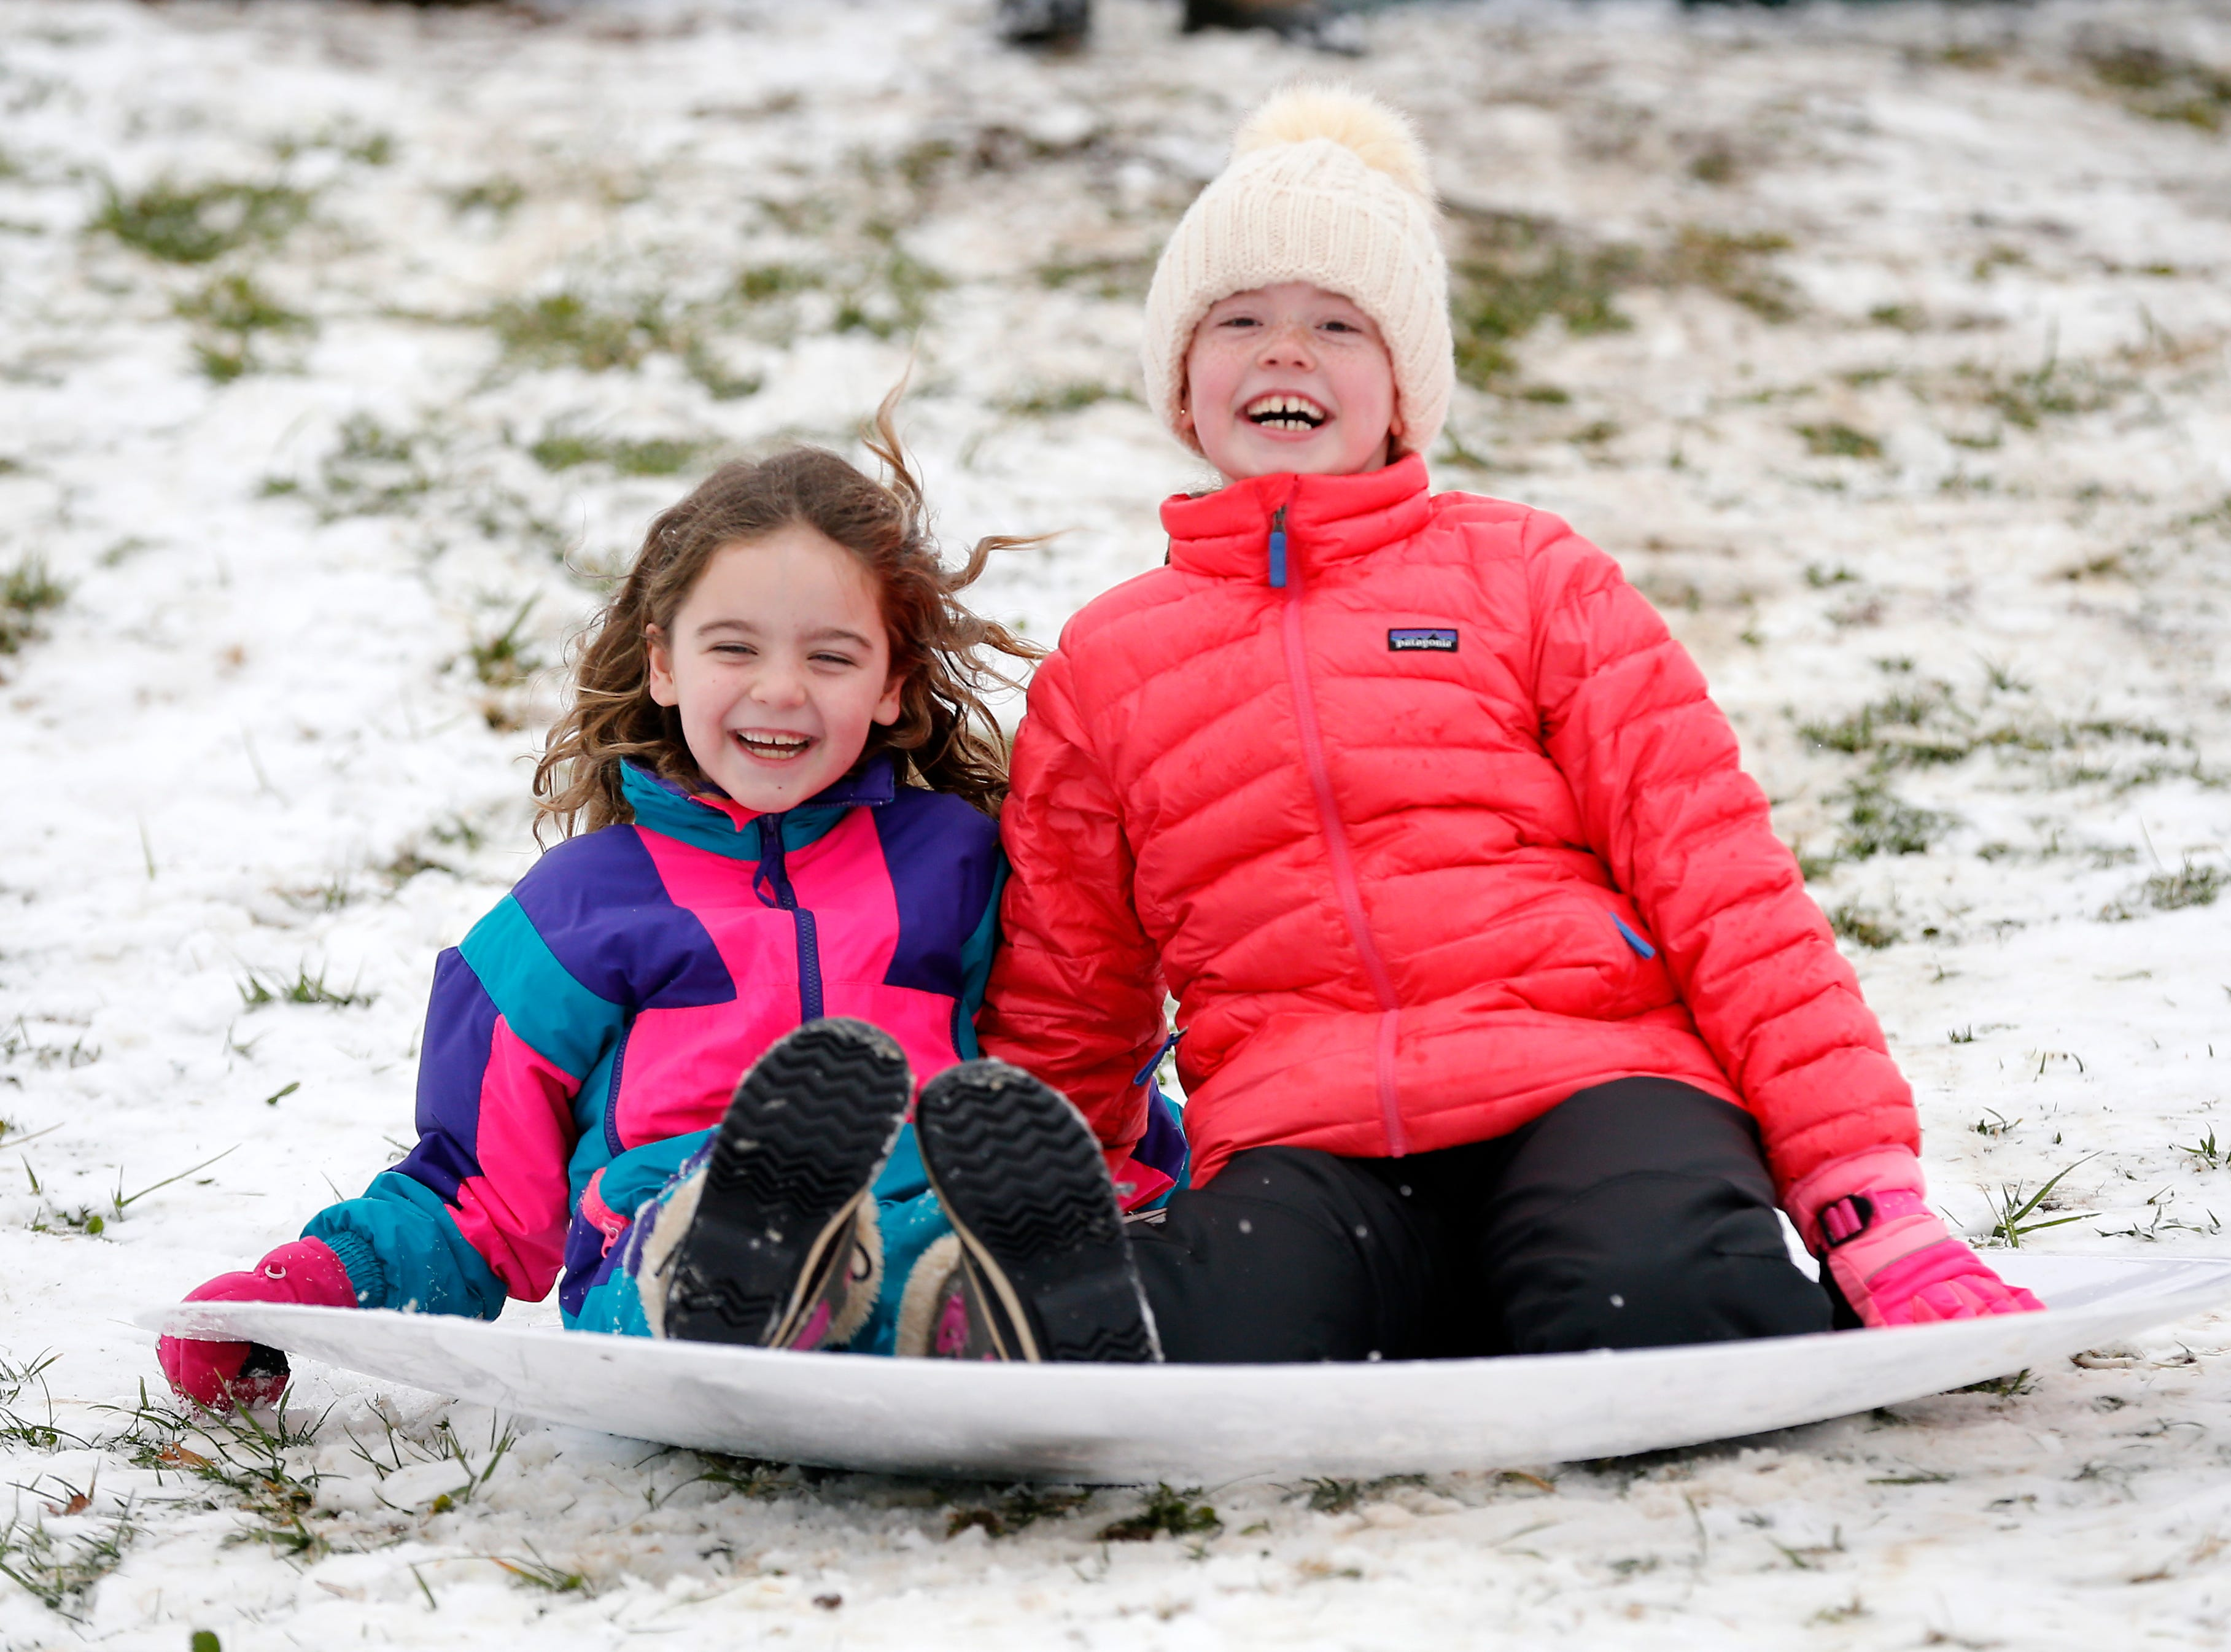 Sisters Becca, 7, and Blair Ryan, 9, of Columbia Tusculum, ride downhill together at Ault Park in the Hyde Park neighborhood of Cincinnati on Saturday, Jan. 12, 2019. A winter storm warning remained in effect until 7 a.m. Sunday after the region experienced the first snowfall of 2019.